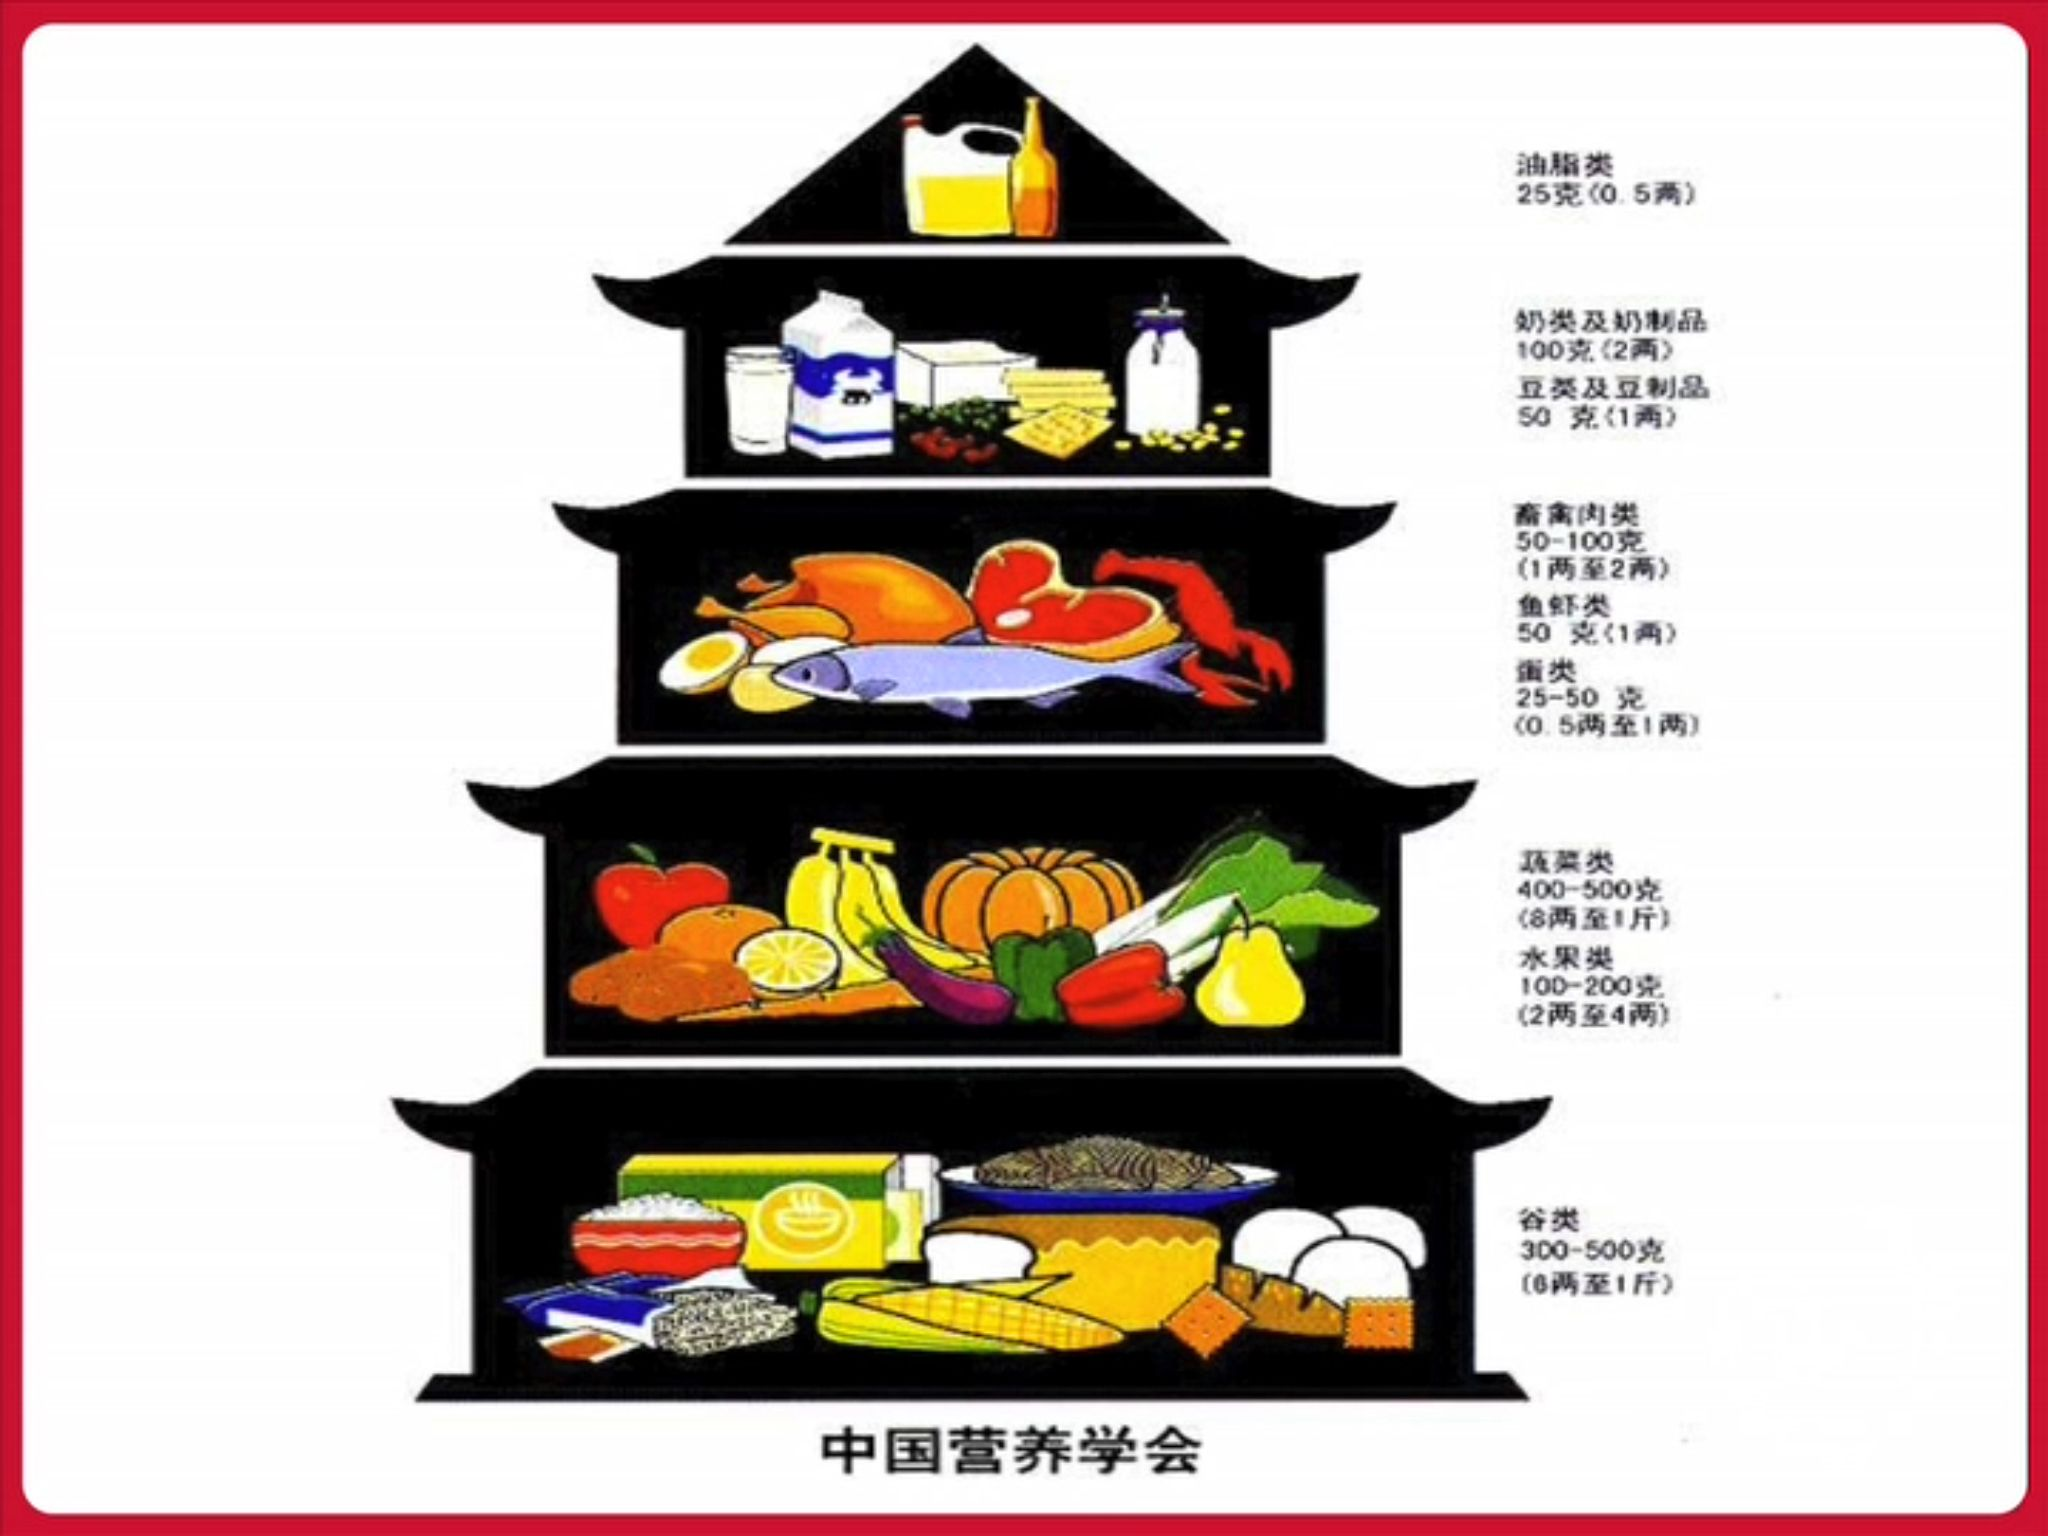 China has a food guide pagoda feed your mind pinterest china has a food guide pagoda forumfinder Image collections